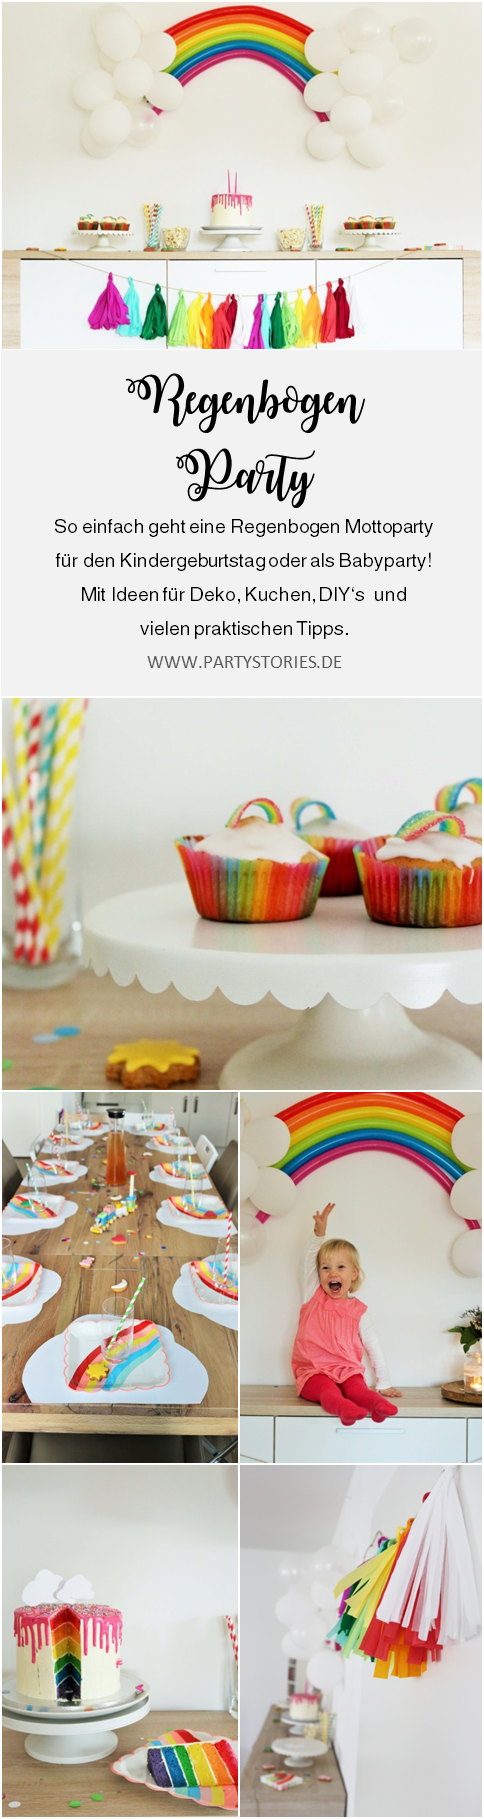 regenbogen party ideen fun games spiele pinterest geburtstag mottoparty und diy. Black Bedroom Furniture Sets. Home Design Ideas